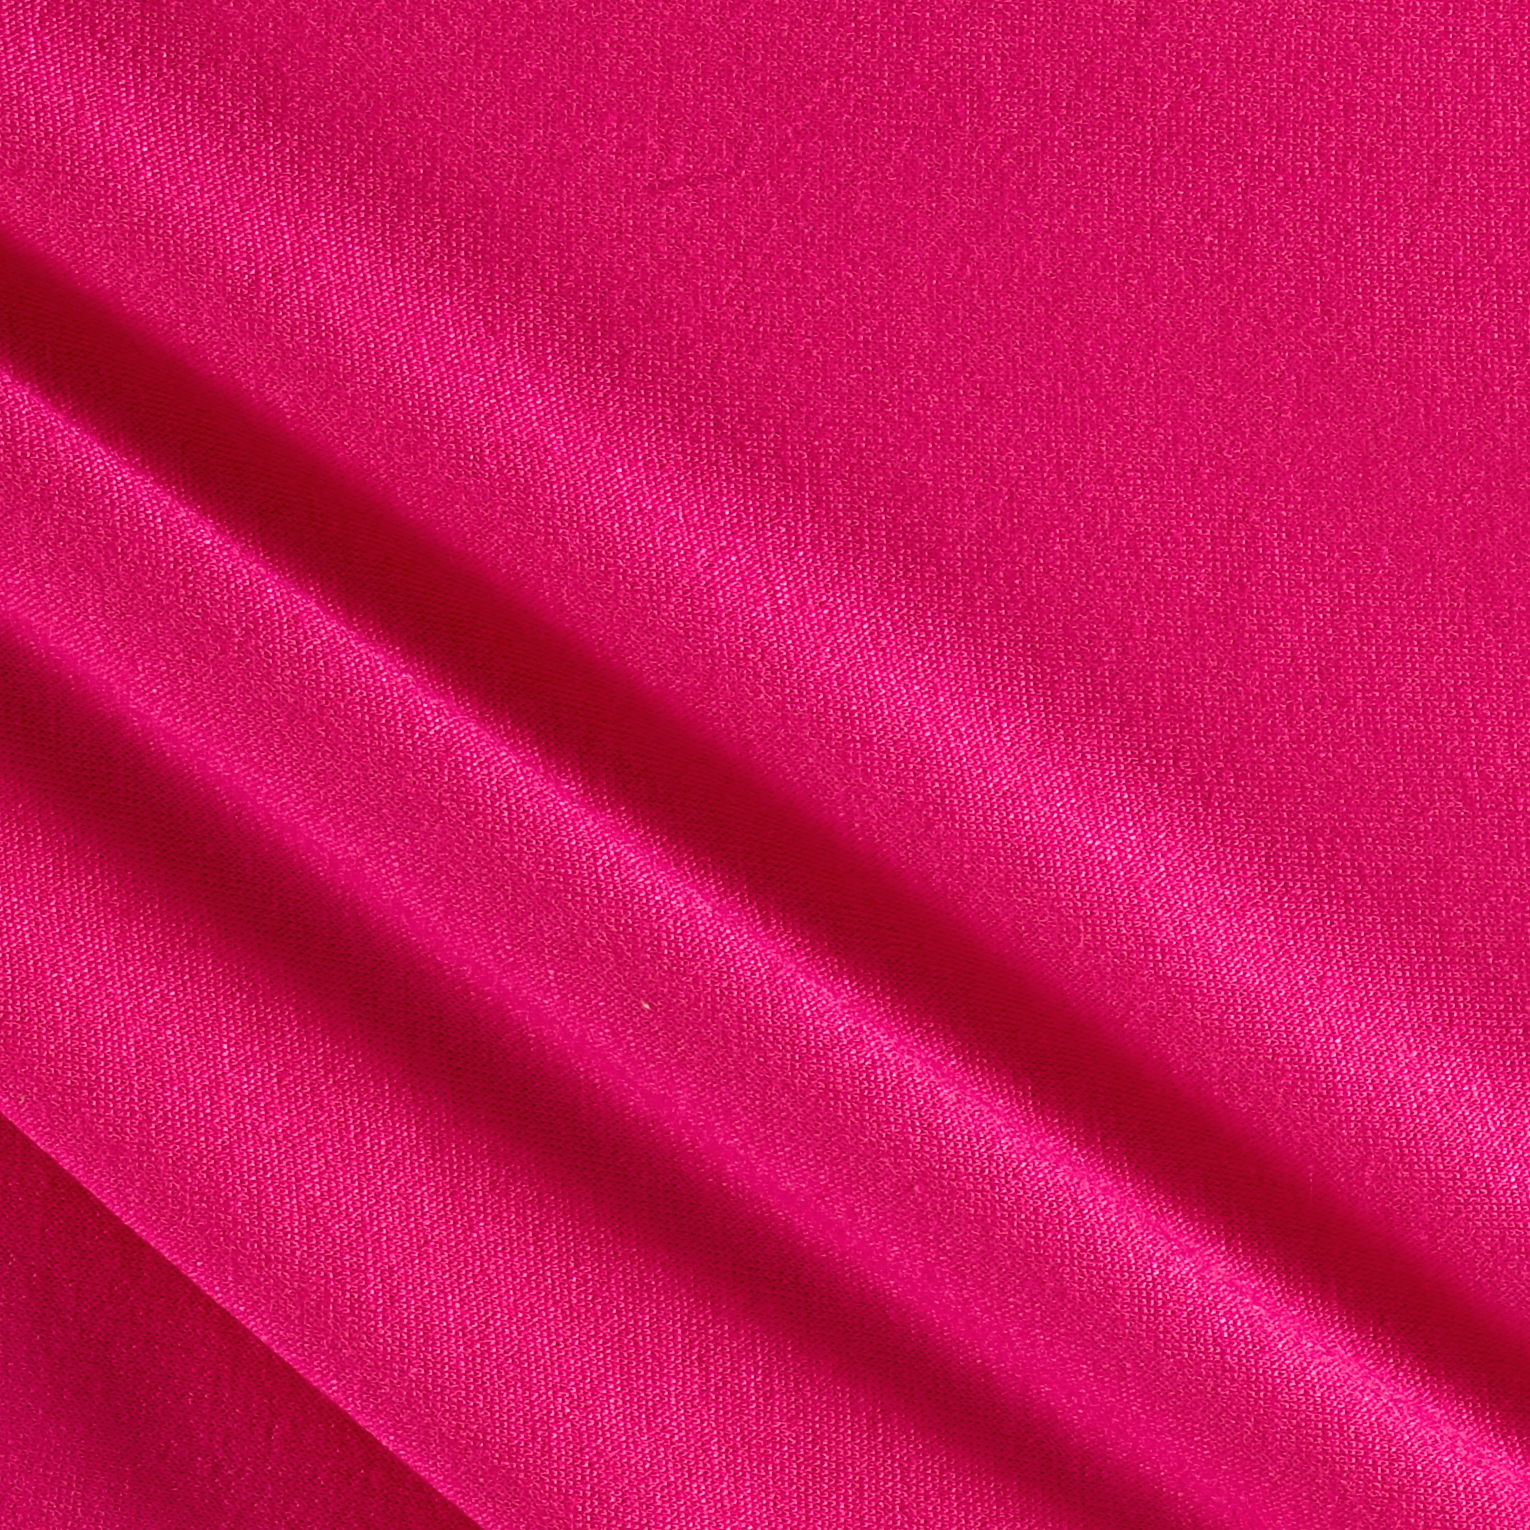 French Terry Knit Solid Fuchsia Fabric 0448290